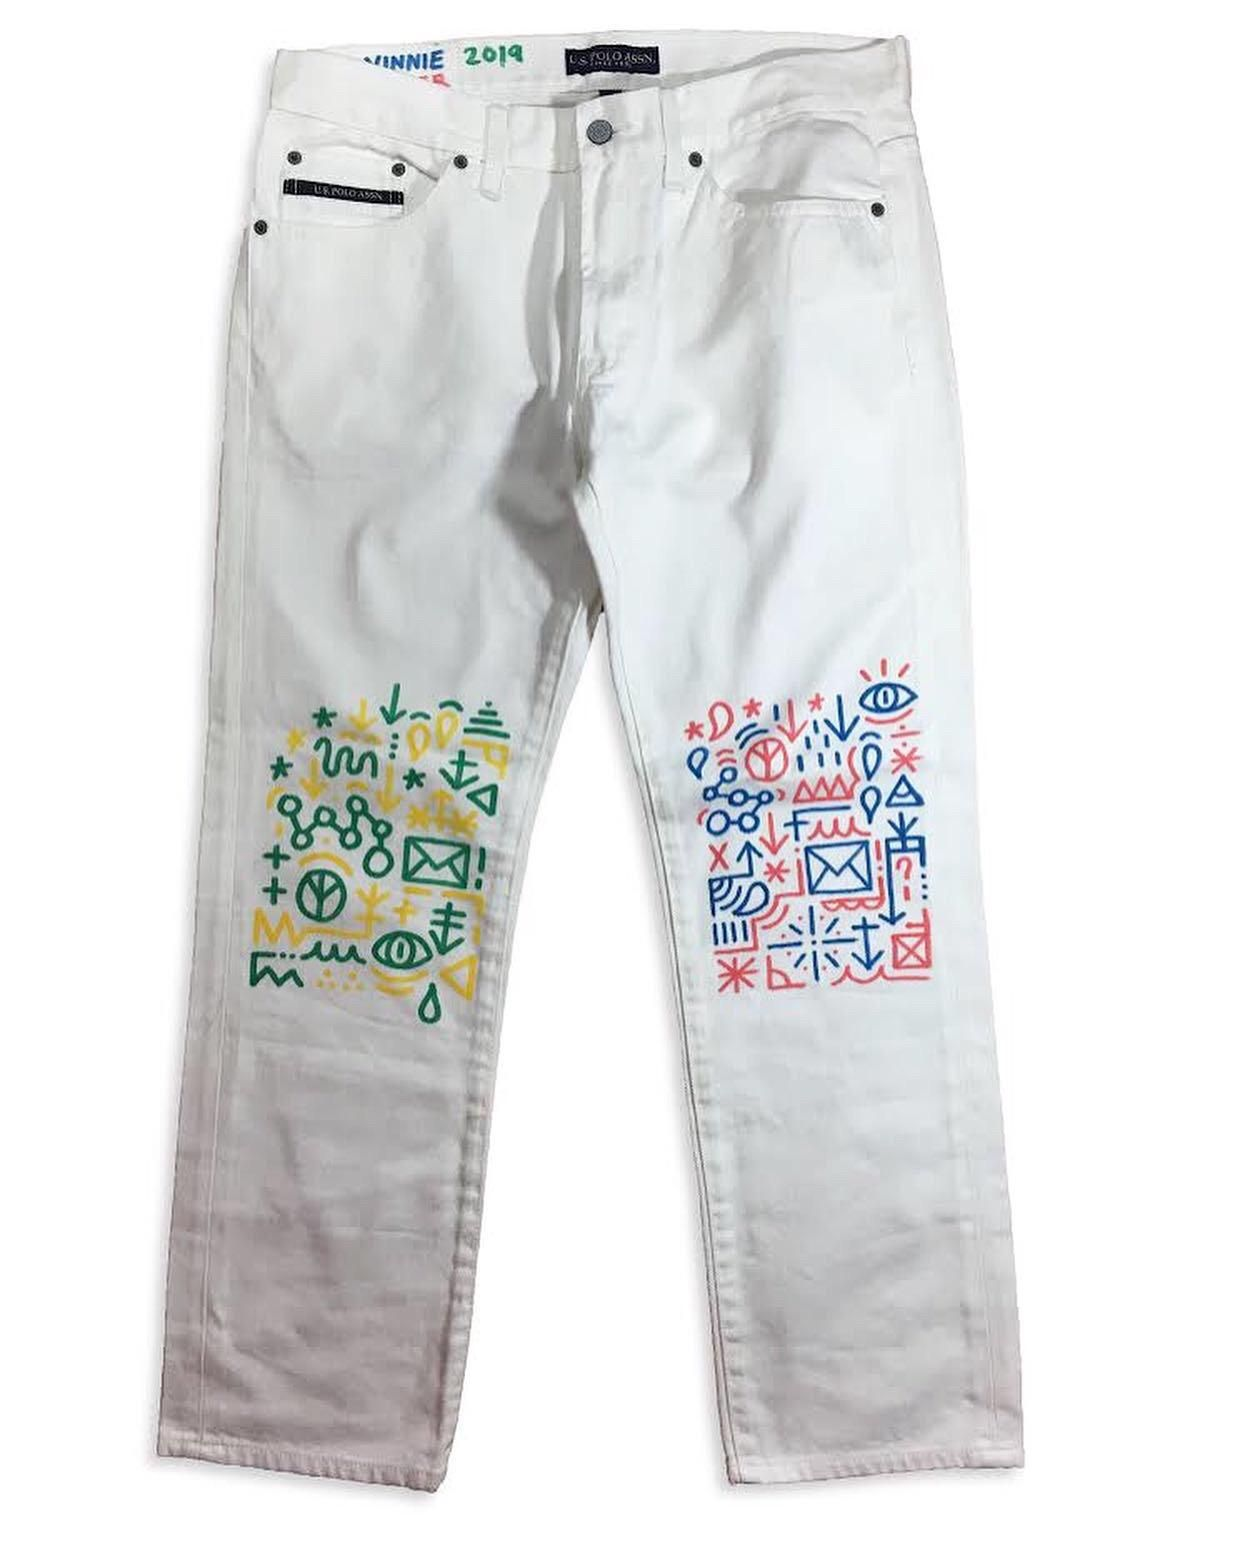 Art Hand Drawn Commission I Did On A Pair Of Us Polo Pants How To Draw Hands Pants Womens Shorts